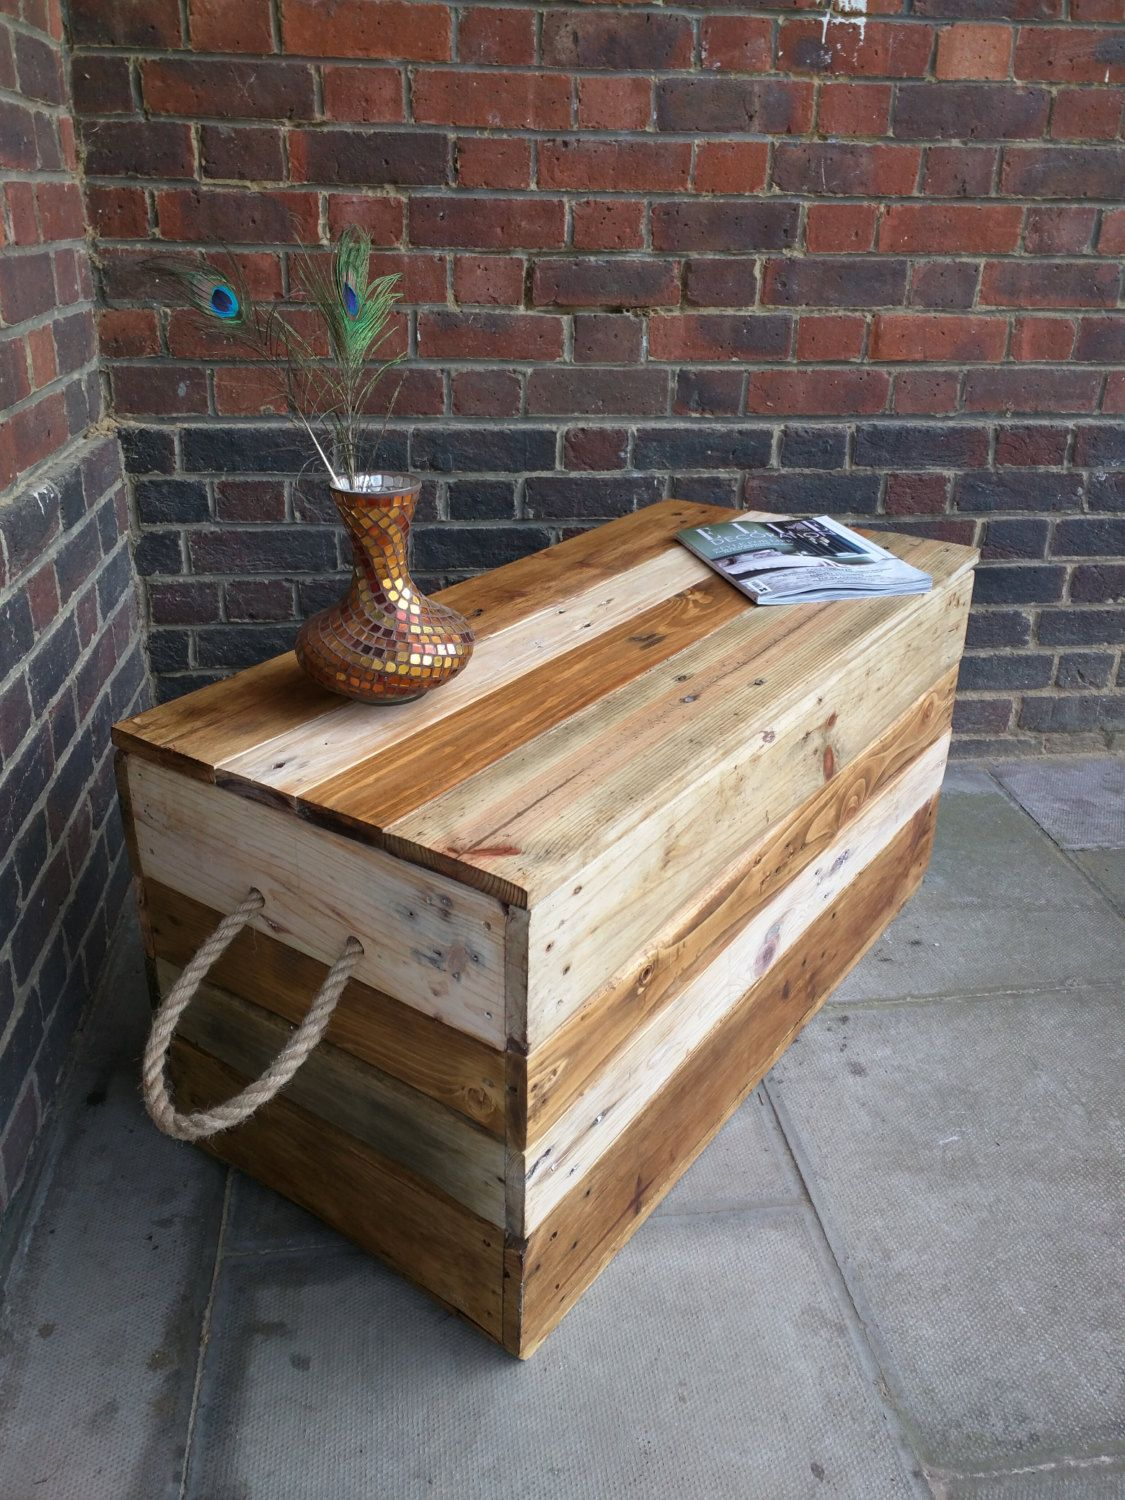 Rustic Striped Storage Chest Trunk Coffee Table With Rope Handles Handmade  From Reclaimed Wood By TimberWolfFurniture